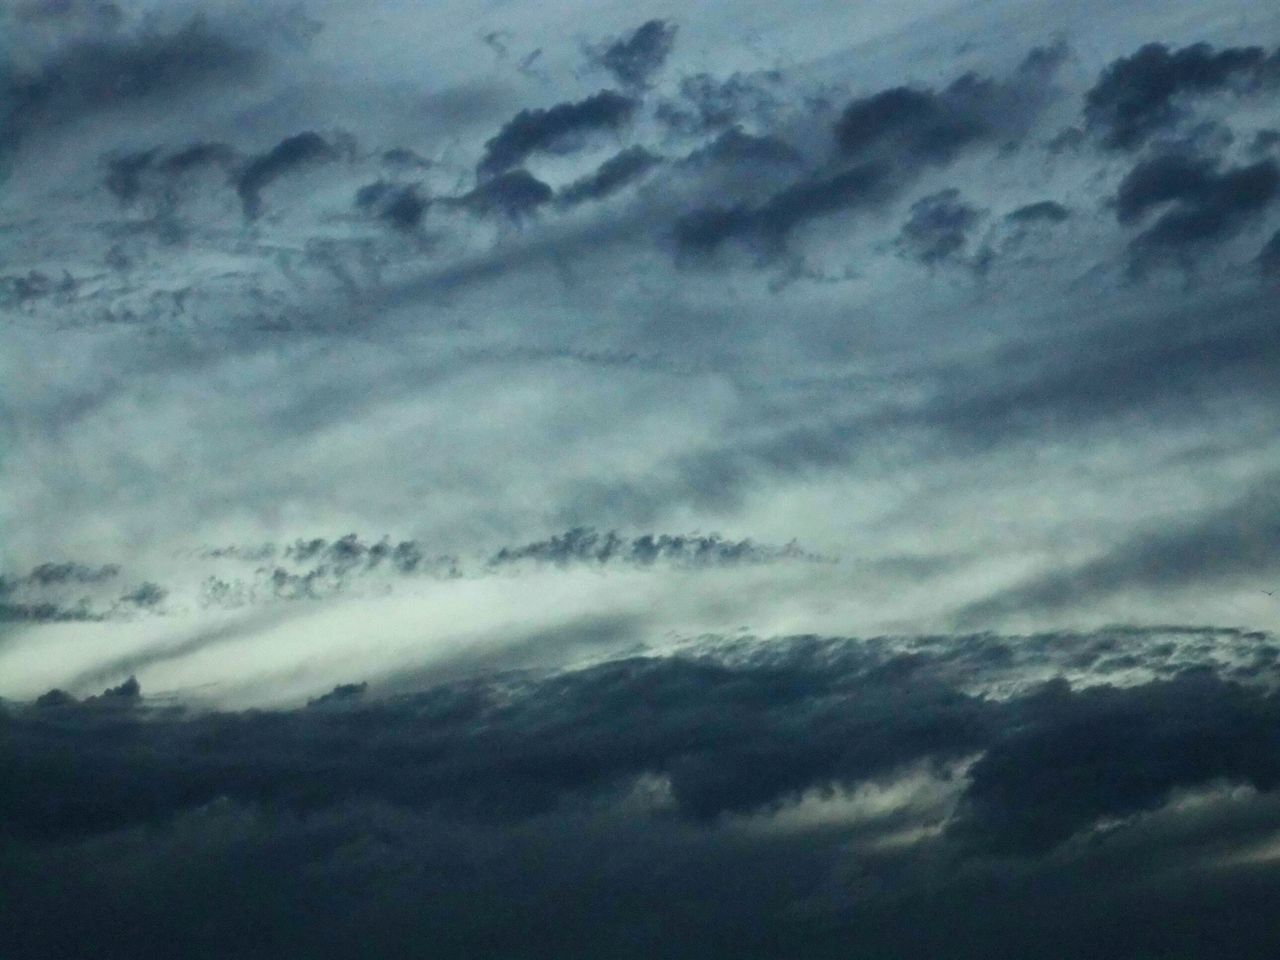 cloud - sky, beauty in nature, nature, weather, dramatic sky, sky only, cloudscape, storm cloud, scenics, sky, atmospheric mood, meteorology, backgrounds, storm, low angle view, tranquility, no people, idyllic, majestic, full frame, outdoors, tranquil scene, abstract, silhouette, awe, day, thunderstorm